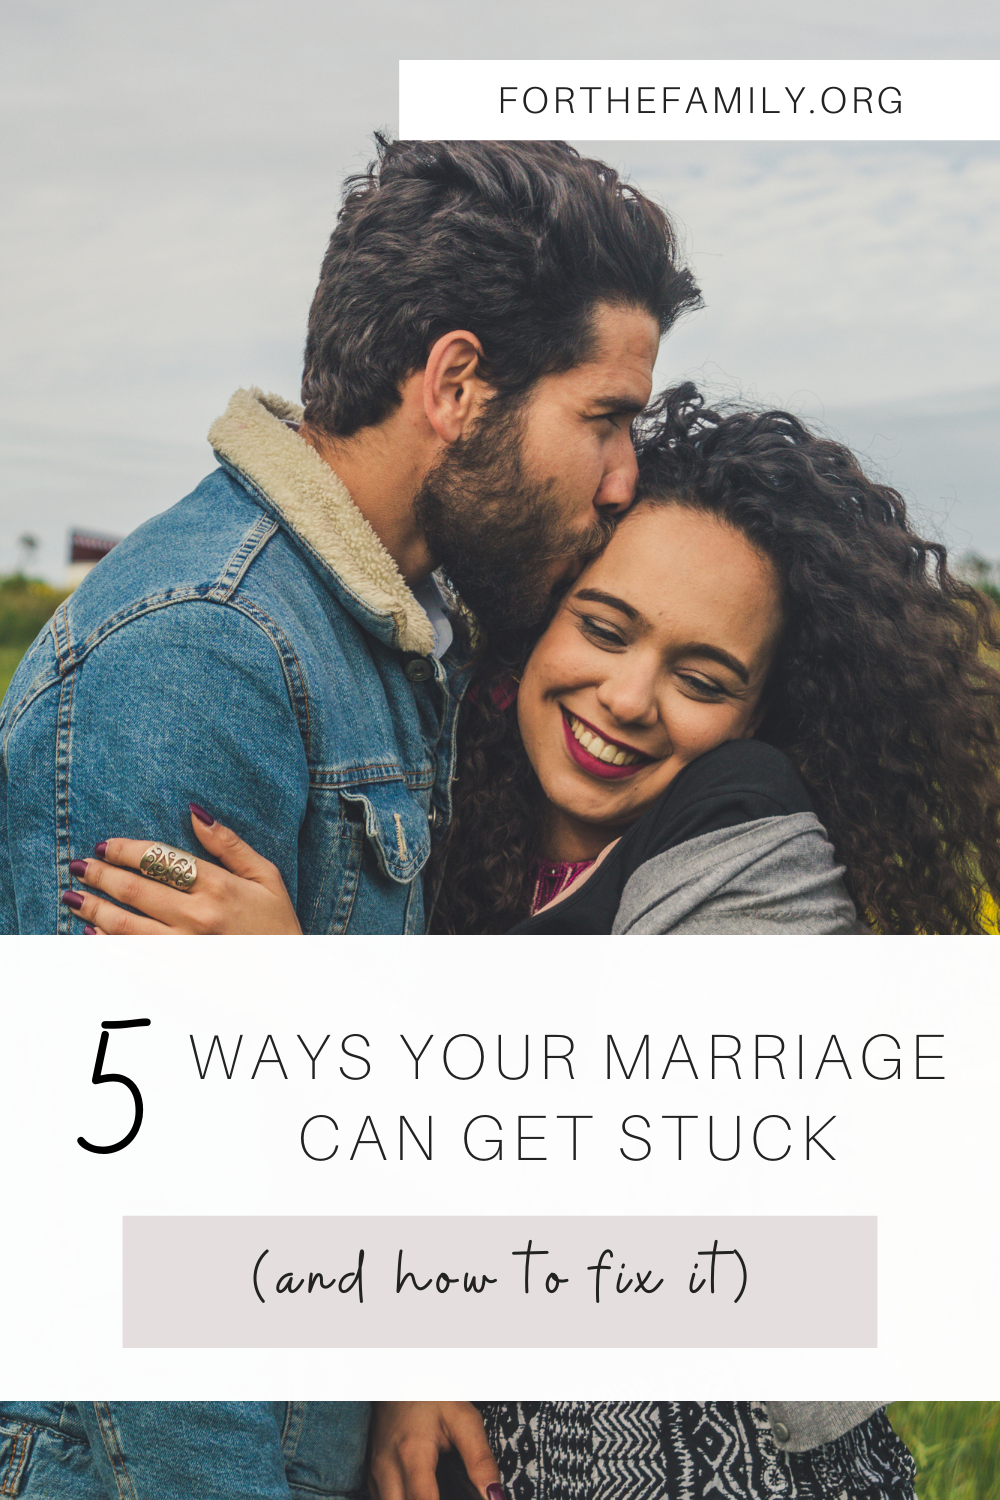 5 Ways Your Marriage Can Get Stuck (and how to fix it)